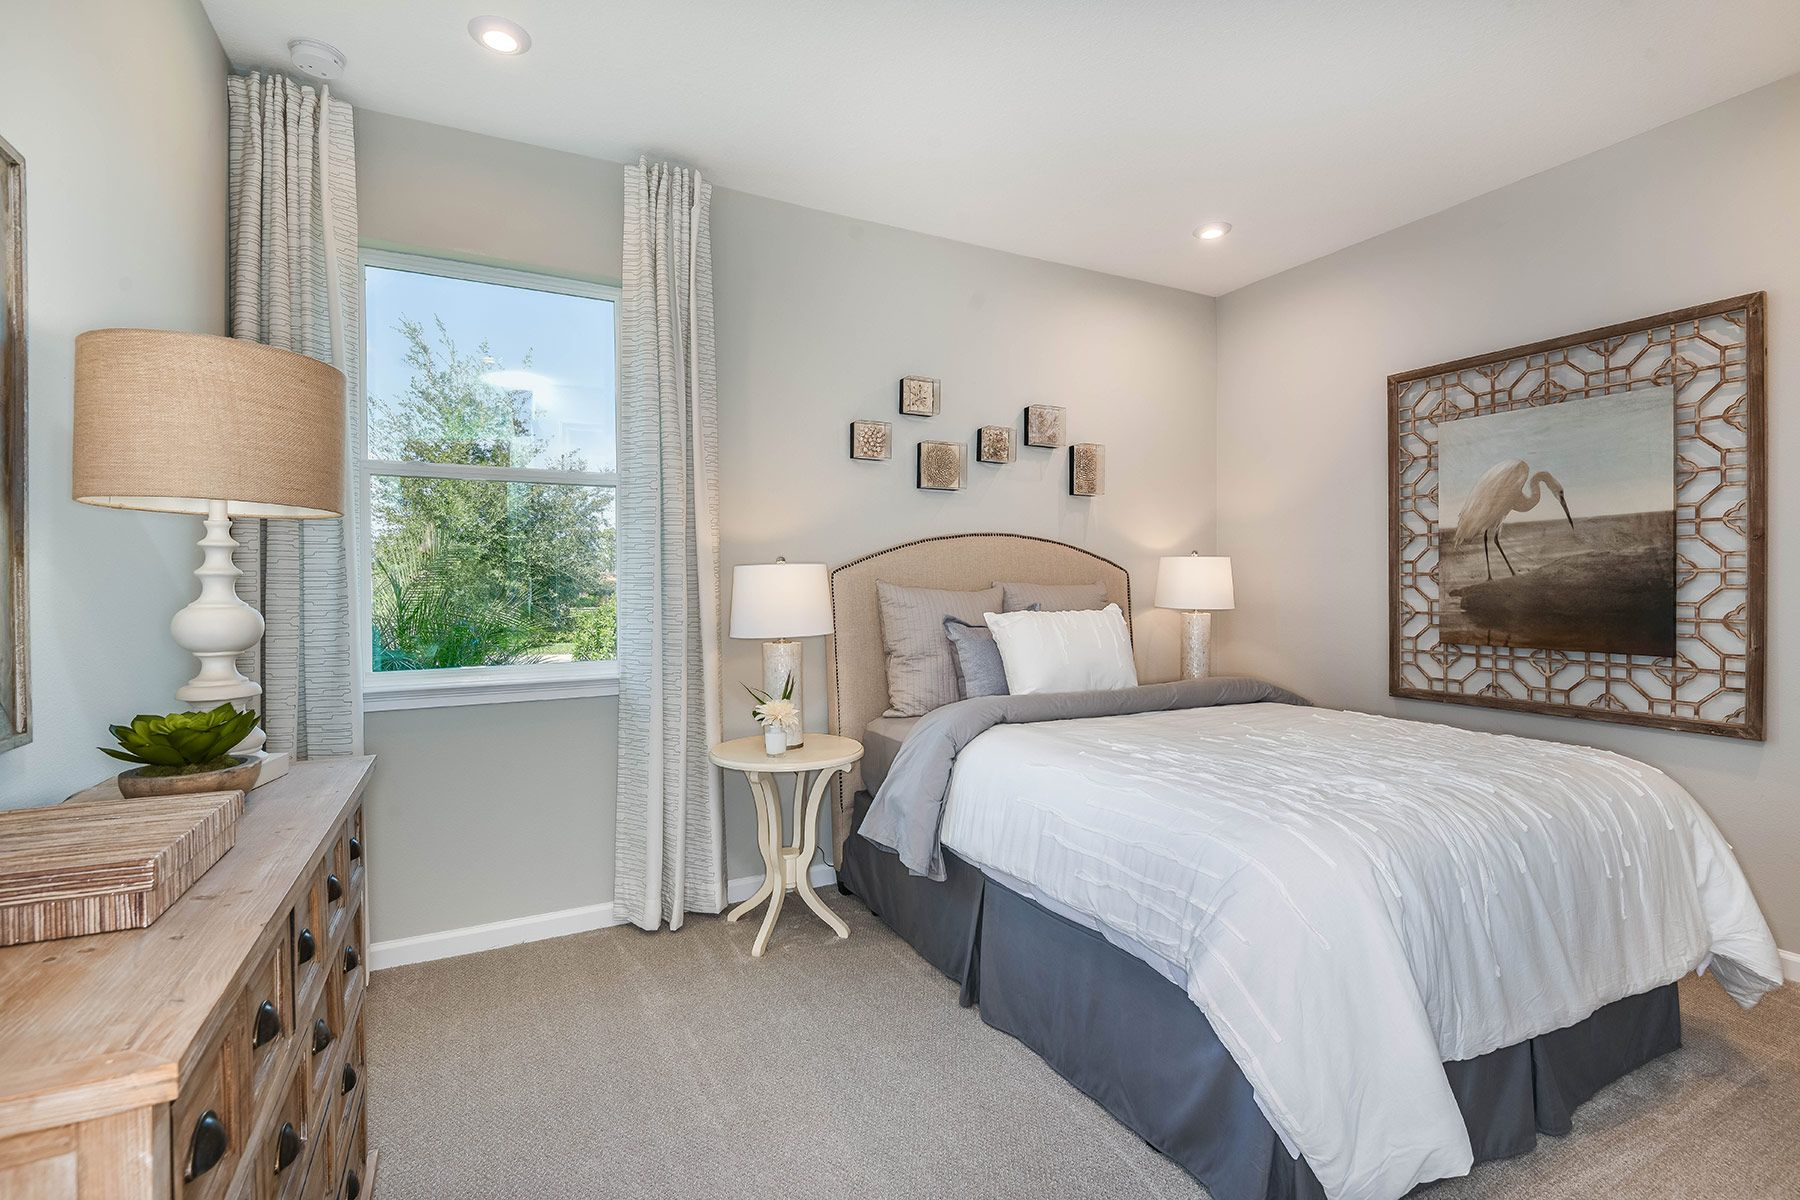 Bedroom featured in the Riviera II By Mattamy Homes in Sarasota-Bradenton, FL